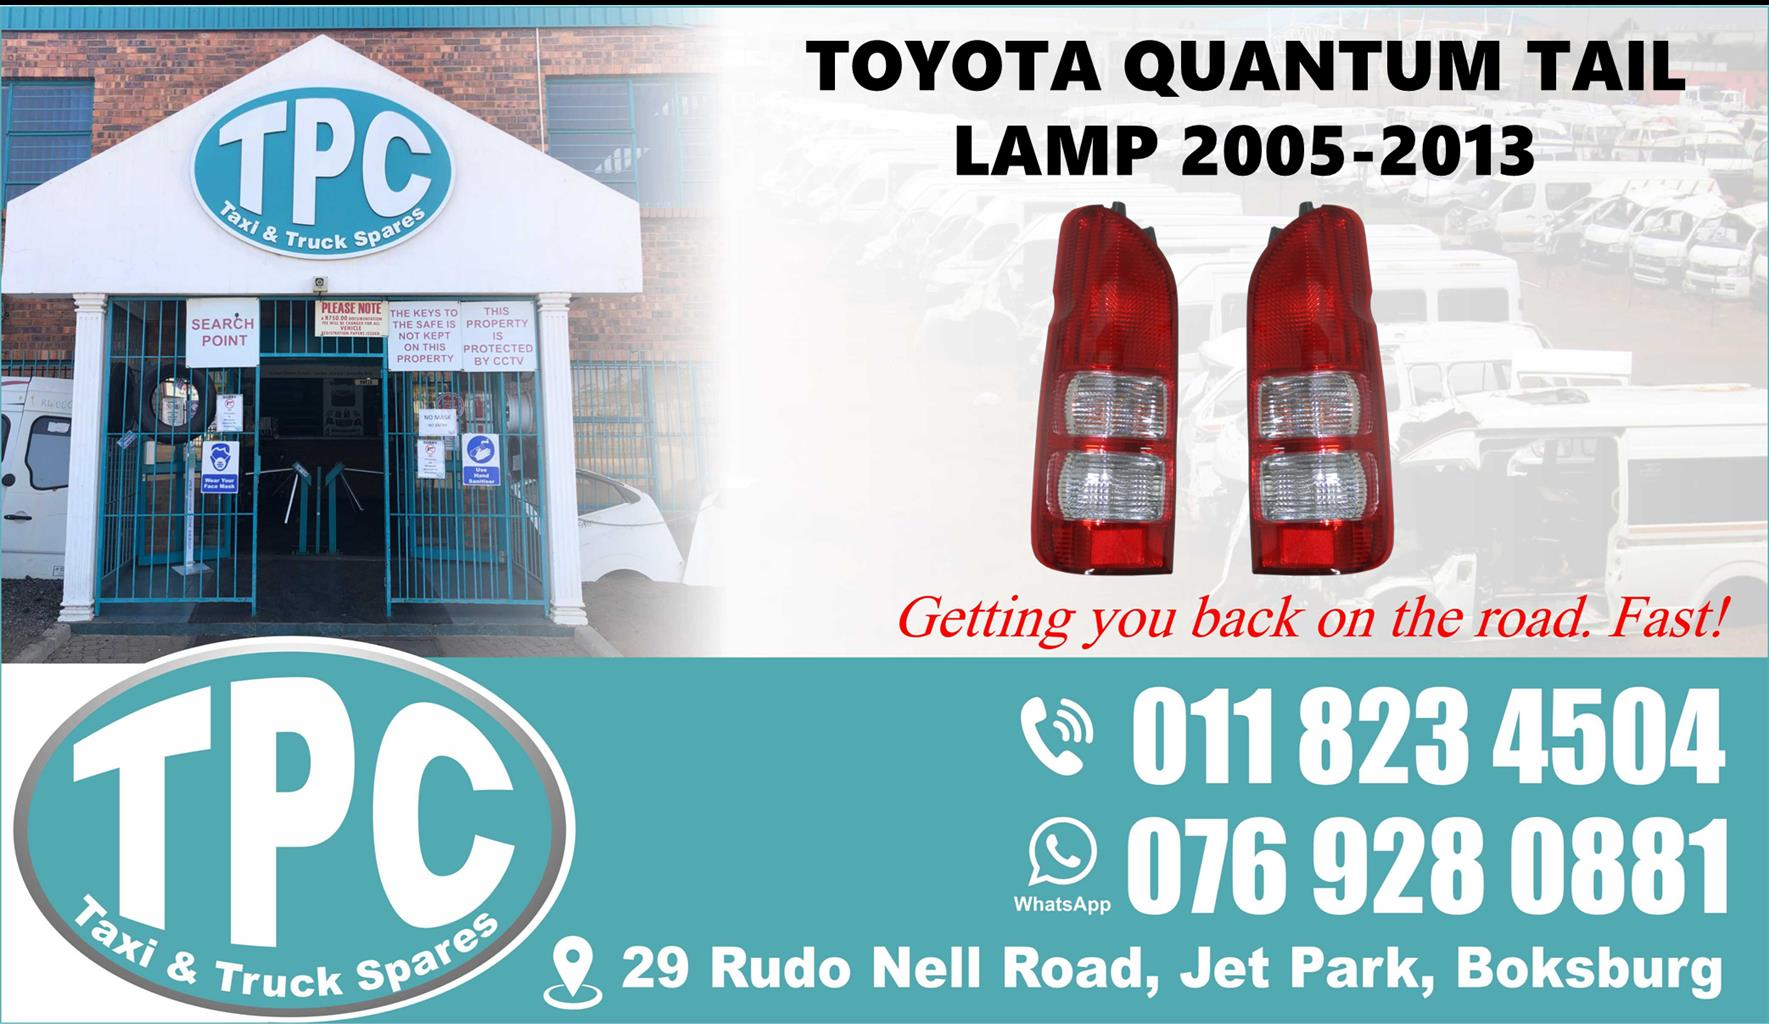 Toyota Quantum Tail Lamp - 2005-2013 - For Sale at TPC